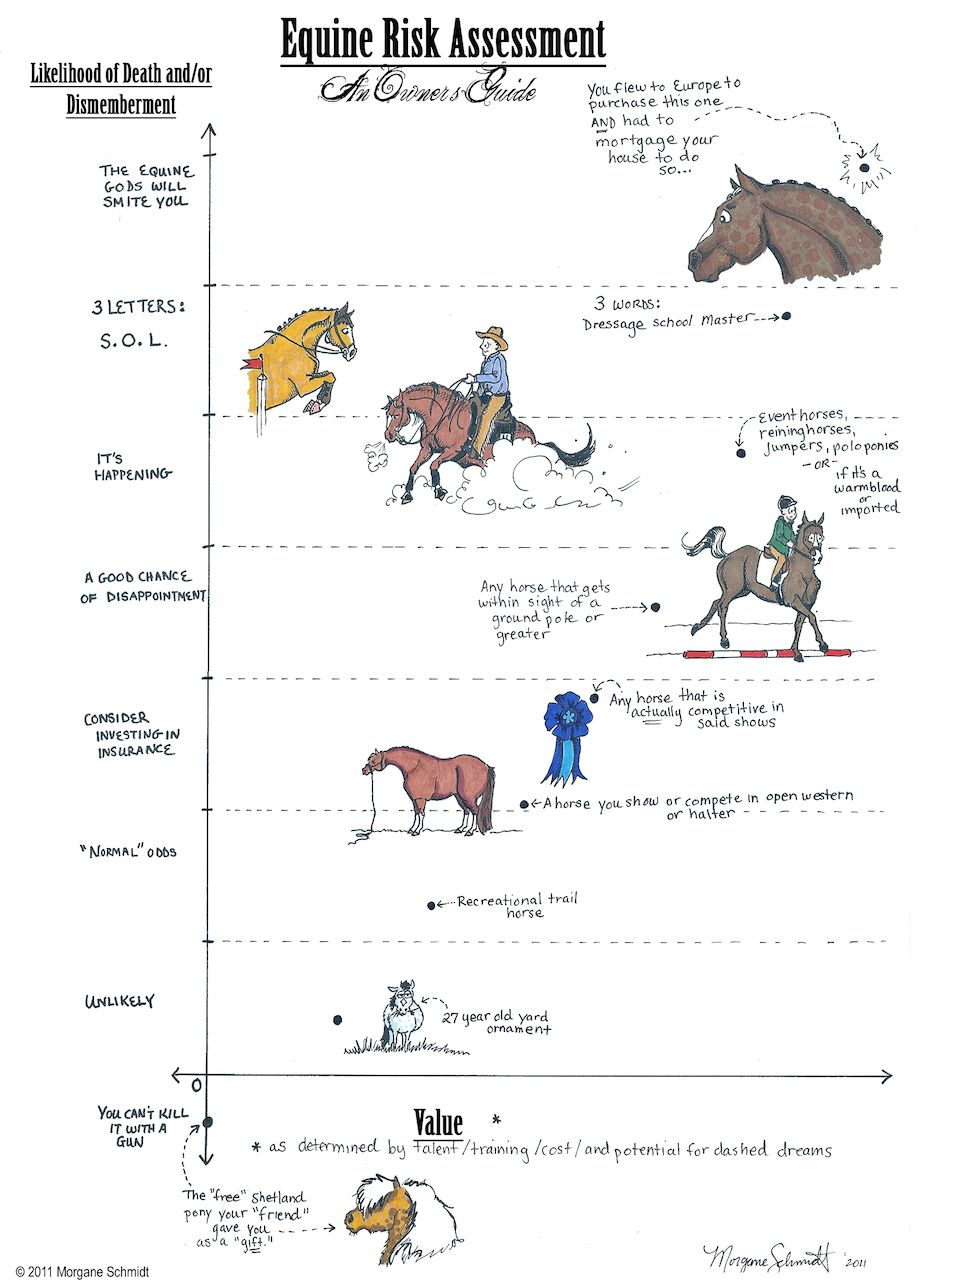 the greater the value of your horse, the greater the chance of it getting hurt. Because this is how it works....